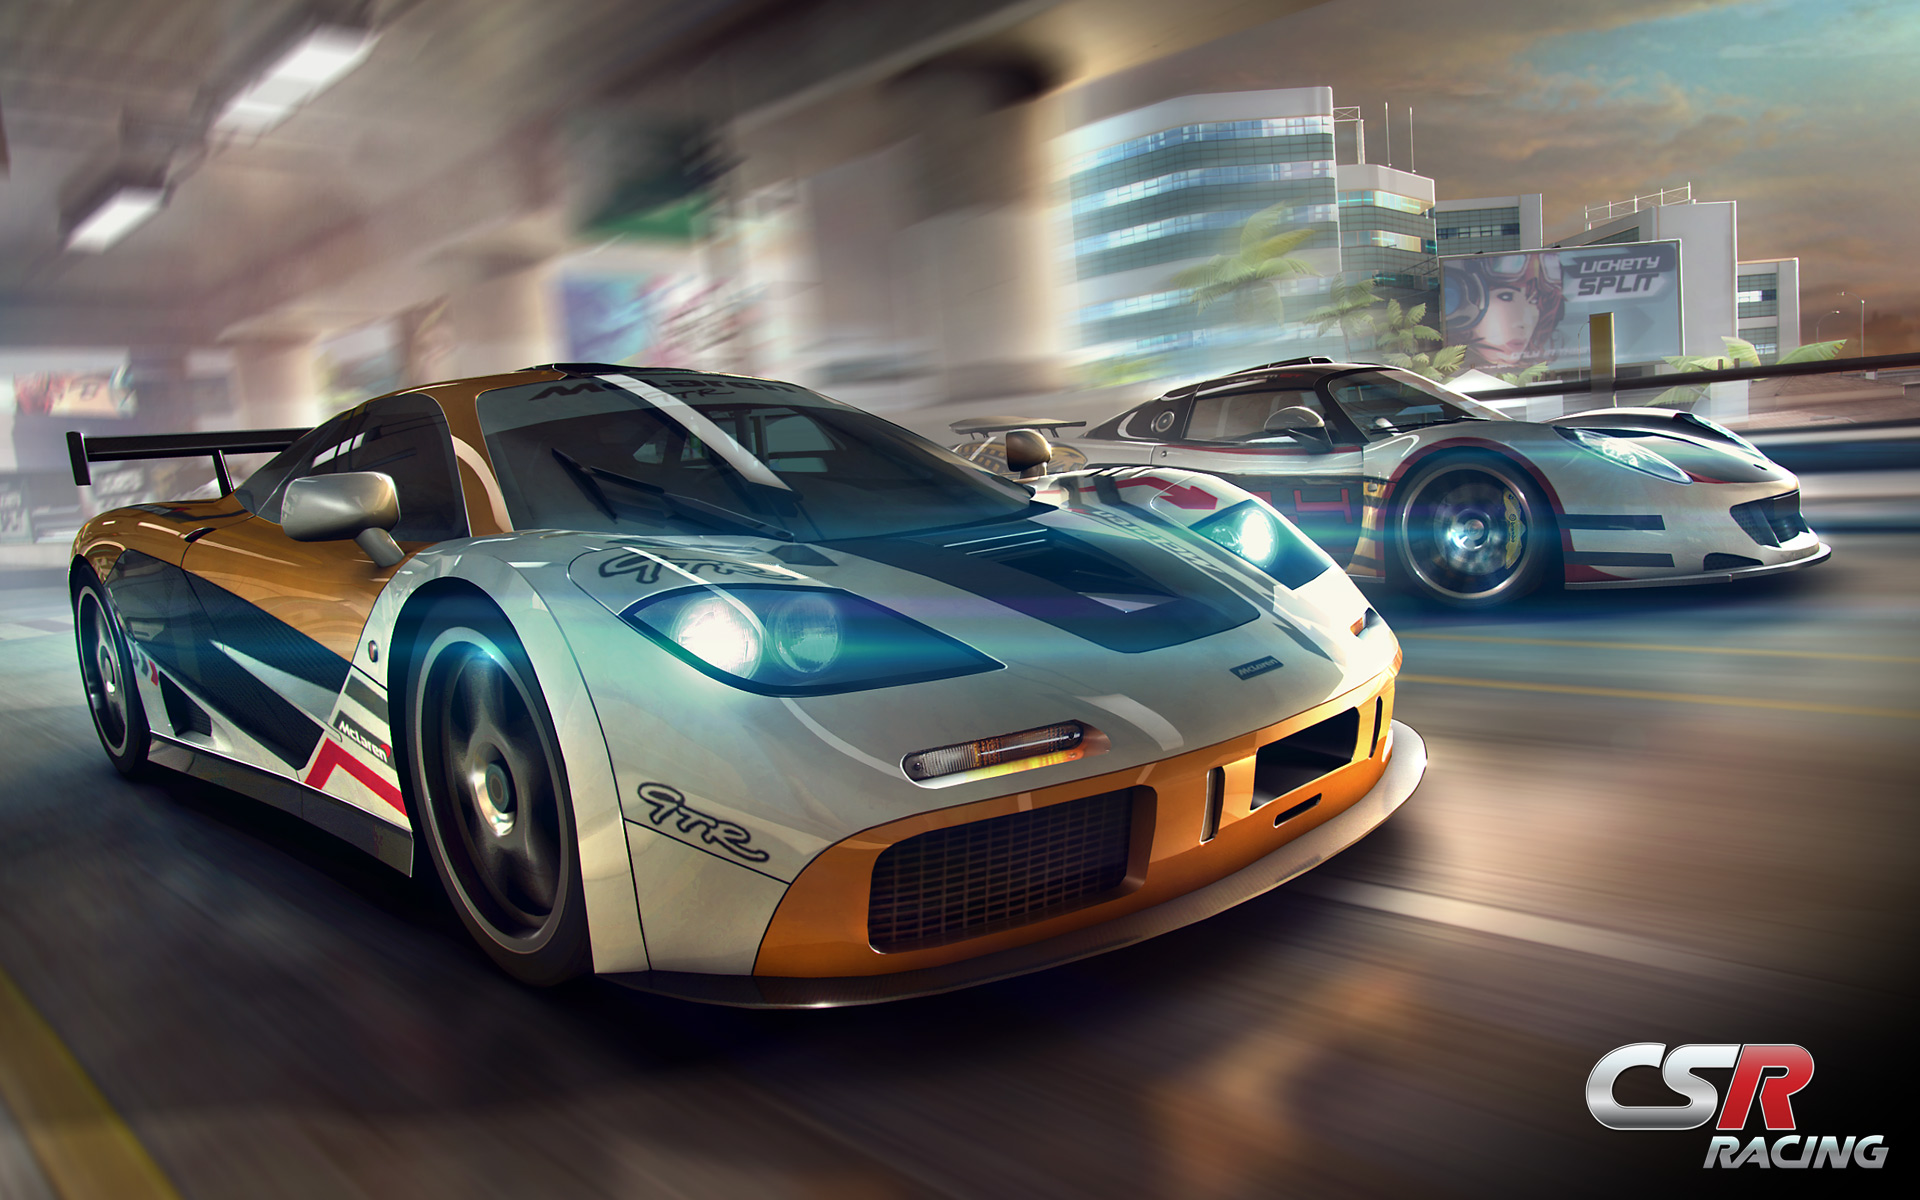 Free Download Race Car Games For Mobile